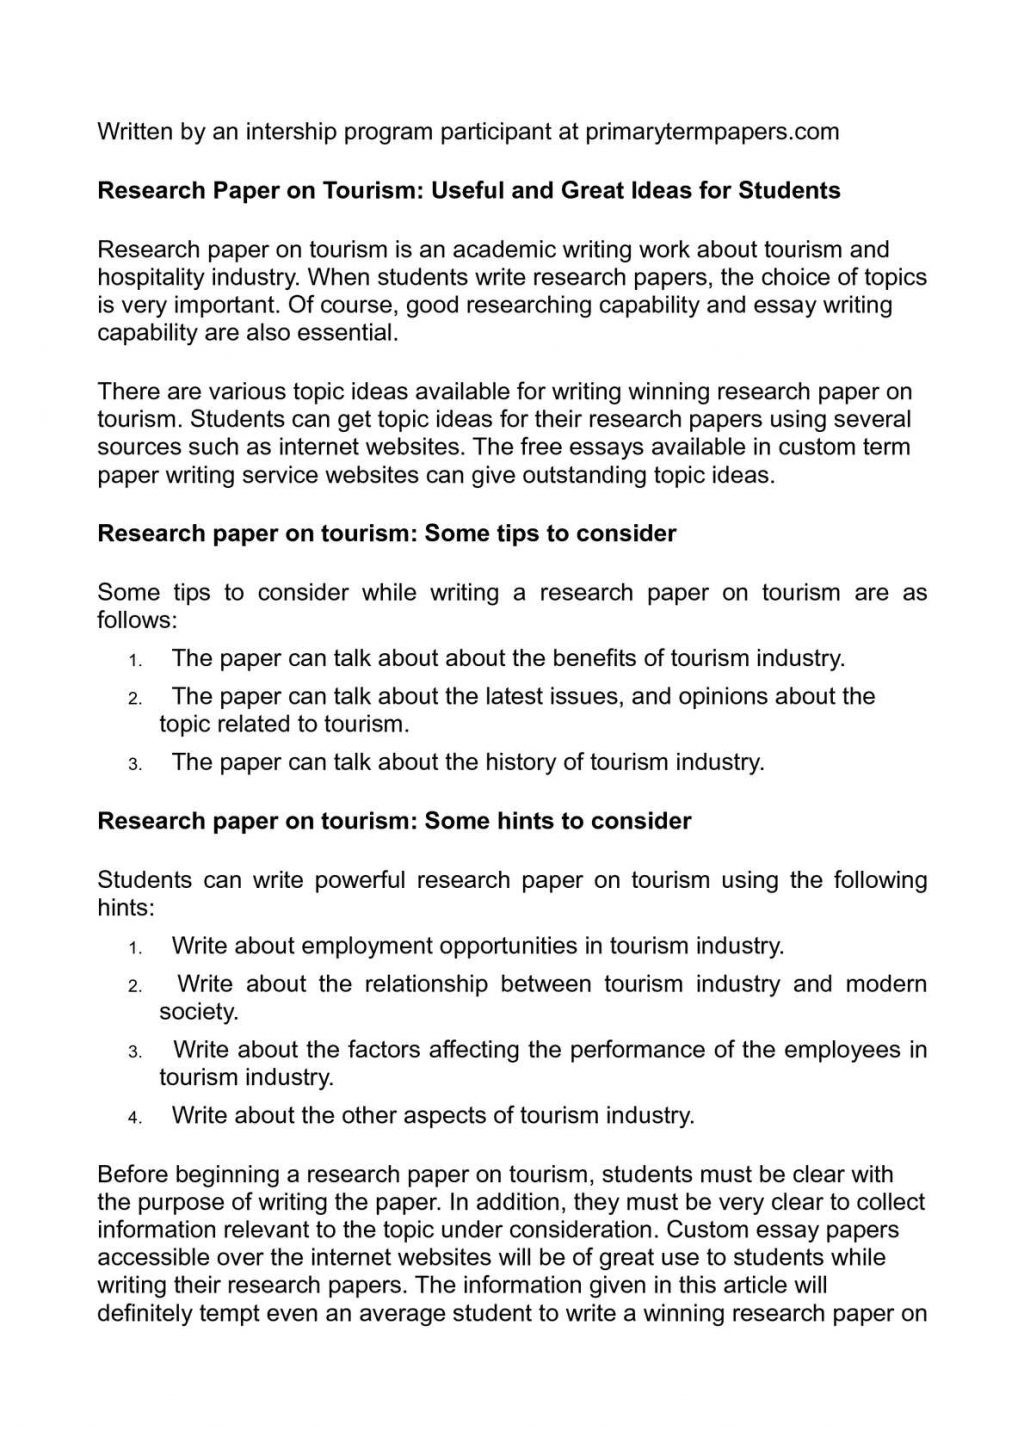 023 Research Paper 20calama20c220a9o On Tourism Useful And Great Ideas For Students Topics To Write About20 1024x1449 Sensational Health Related Public Large